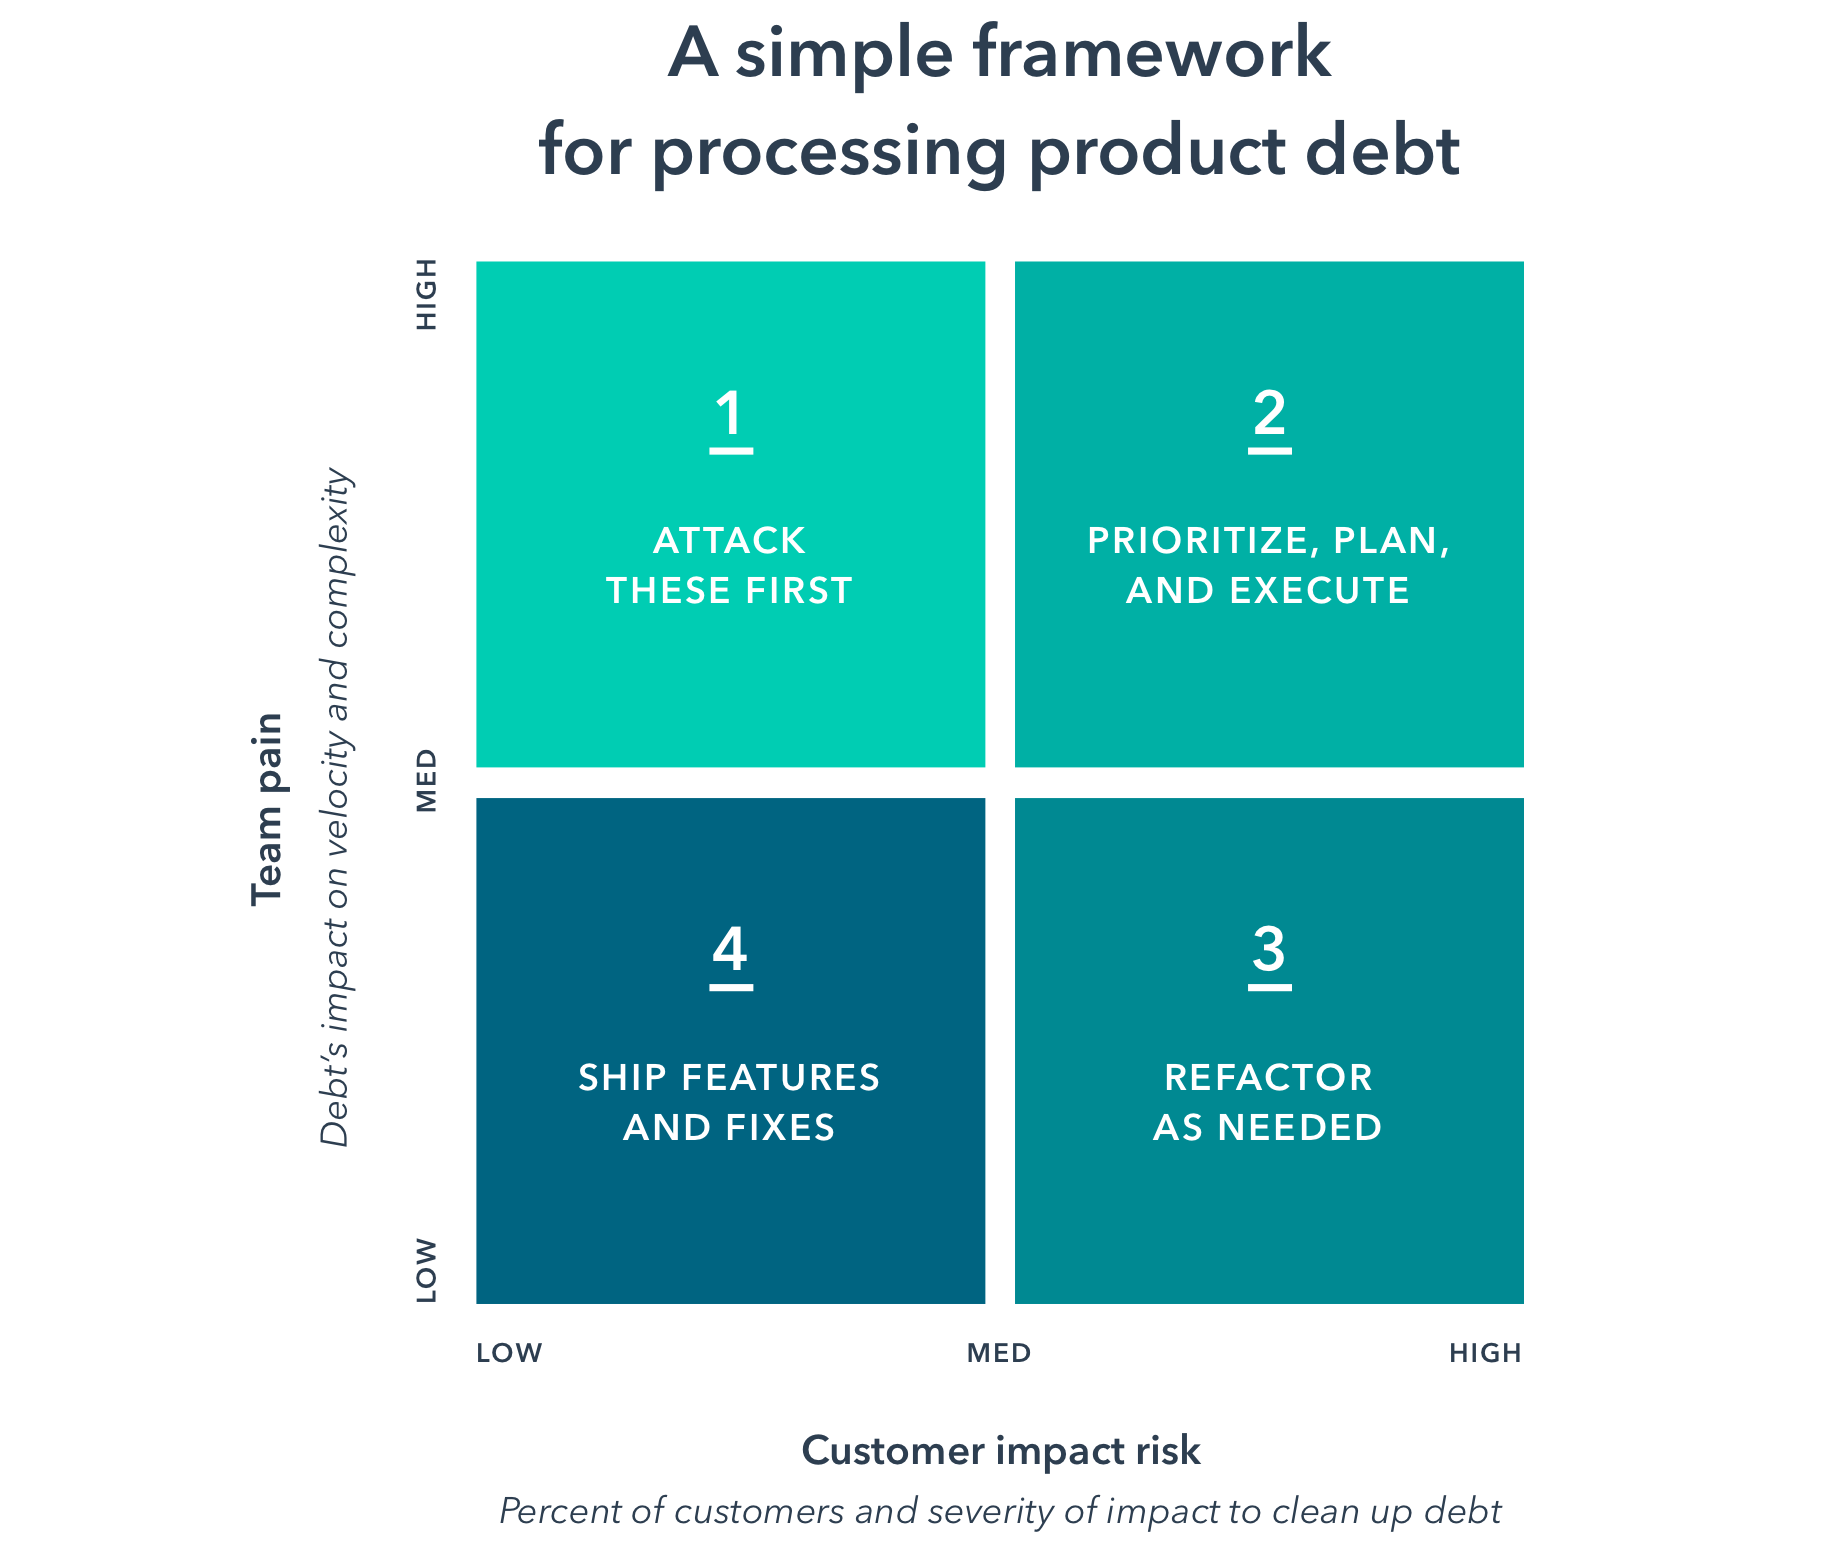 a framework for processing product debt in 4 quadrants, image from hubspot